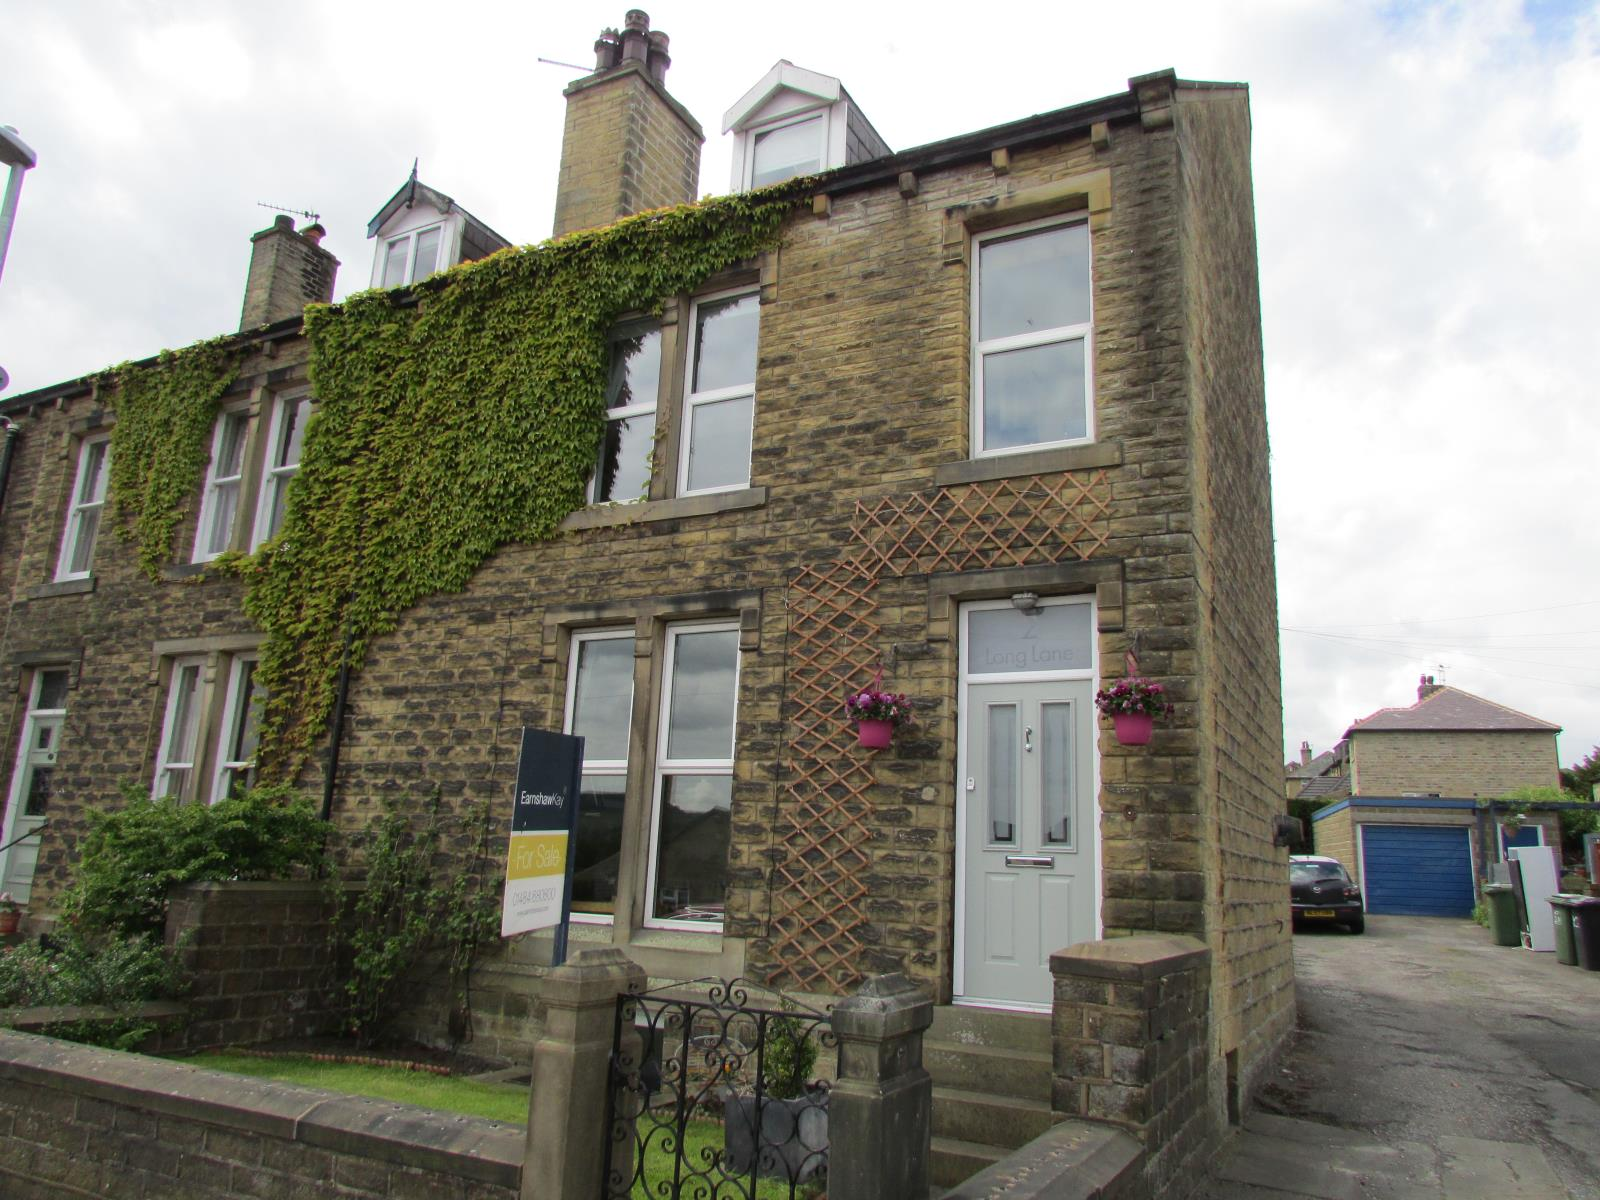 2 Long Lane, Honley, HD9 6EA